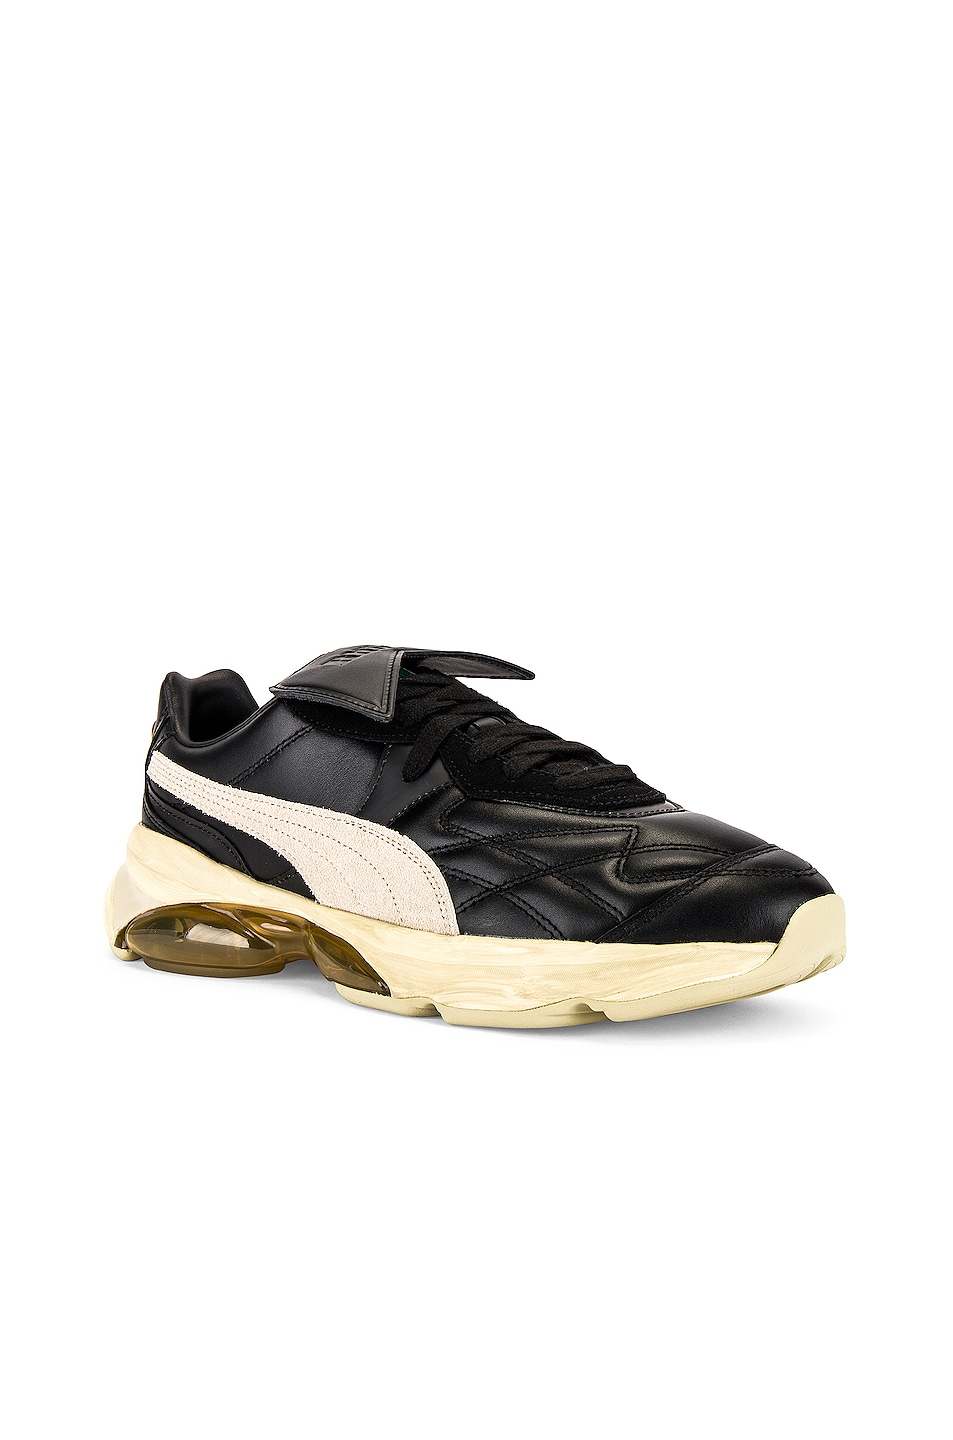 Image 1 of Puma Select x Rhude Cell King Sneakers in